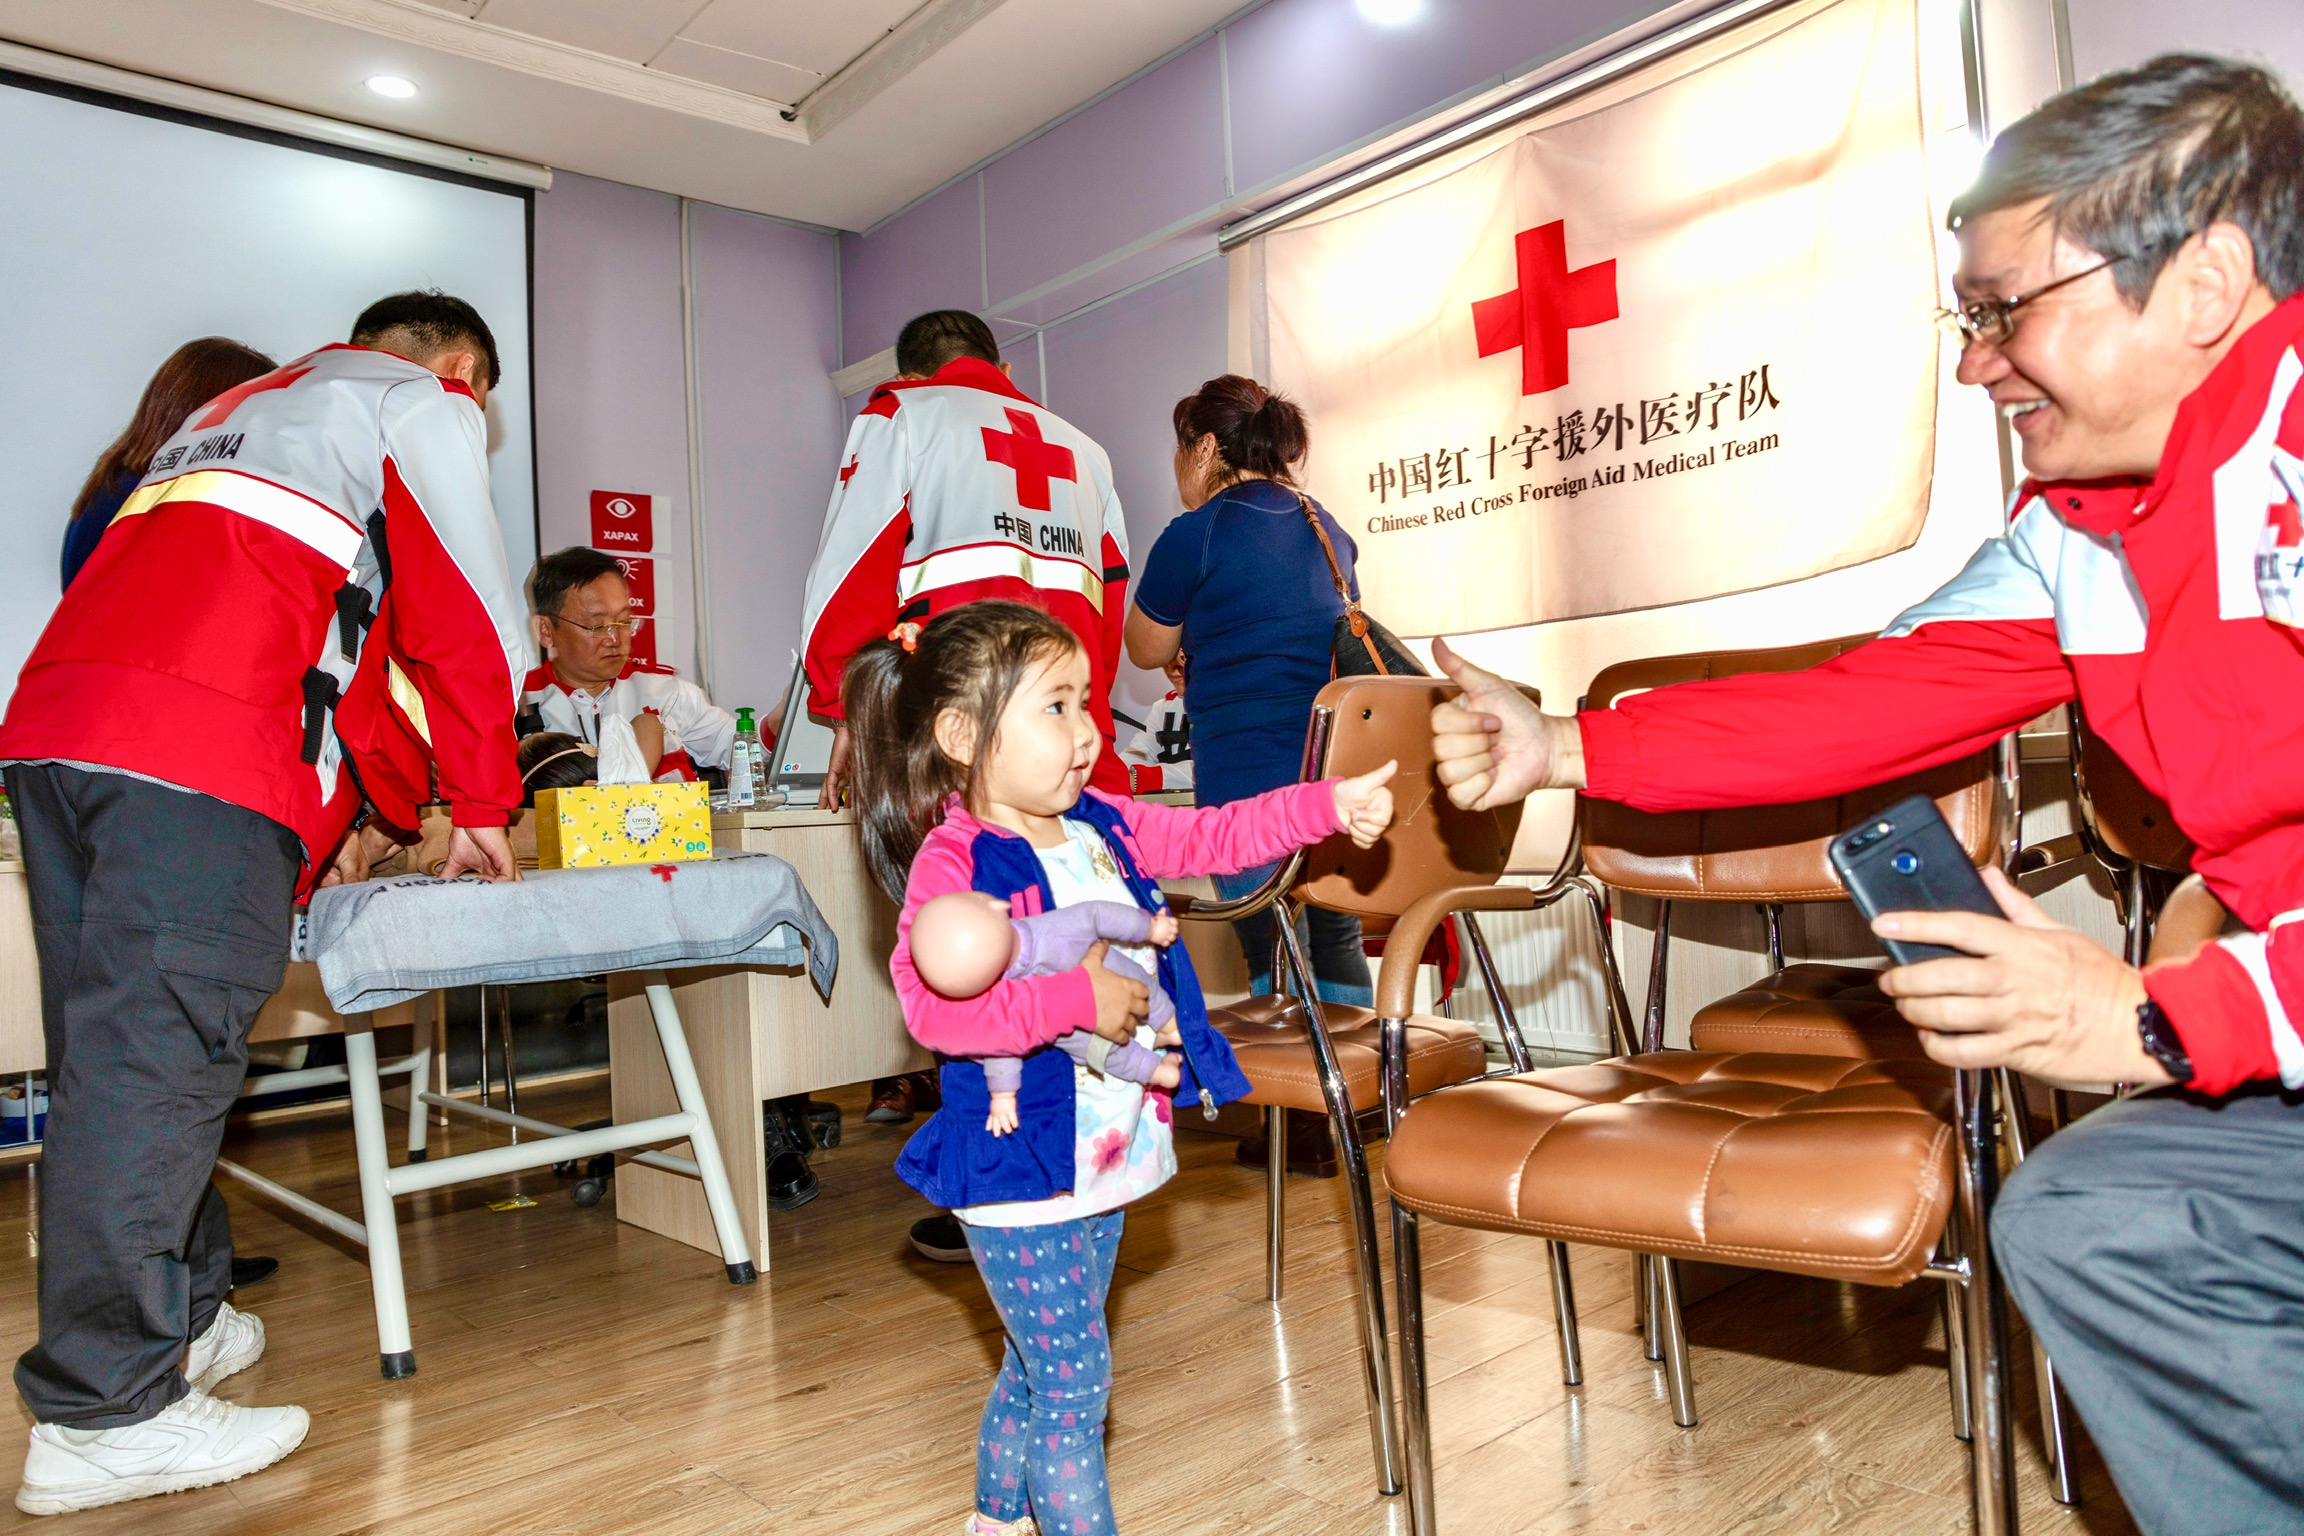 Chinese Red Cross foreign aid medical team launches 2nd humanitarian rescue in Mongolia